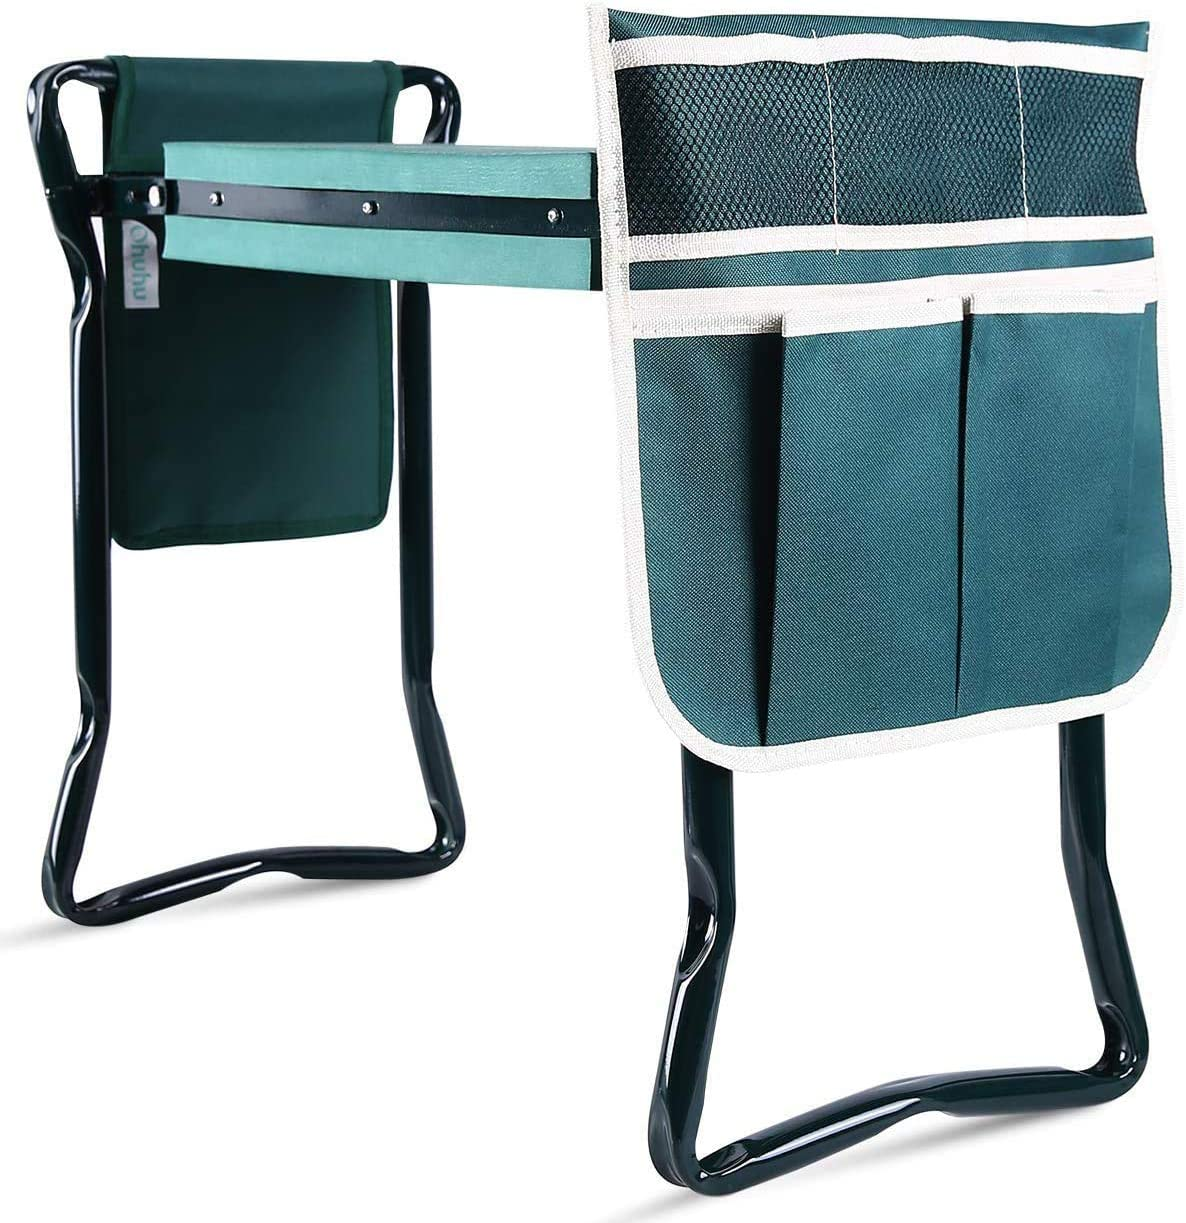 Ohuhu Upgraded Garden Kneeler and Seat with Thicken & Widen Soft Kneeling Pad, Heavy Duty Foldable Garden Stool Bonus 2 Large Pouches for Gardening Tools, Ideal Gifts for Gardener Parents Seniors